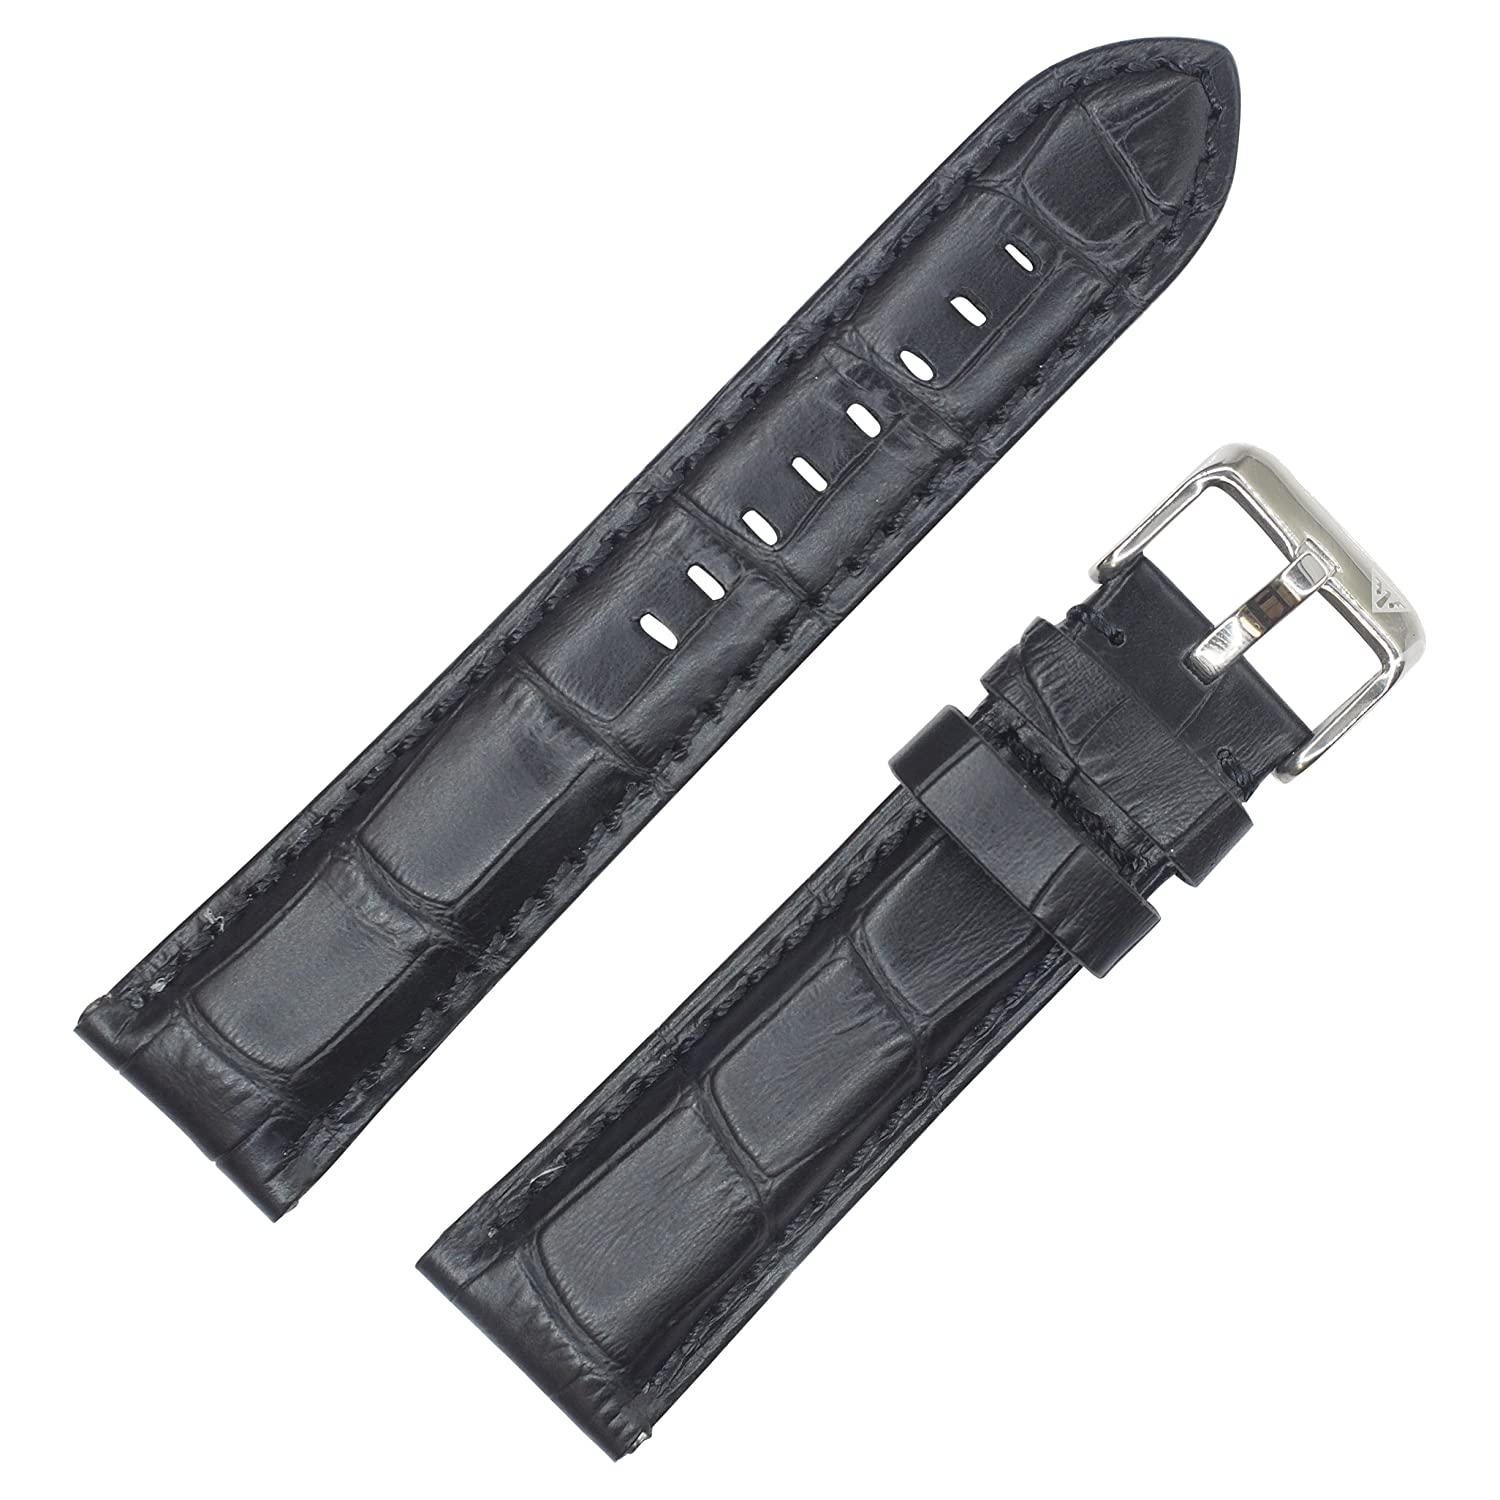 ブラッククロコダイルGrain純正leatherpadded Watch Band By Dakota 20mm ブラック 20mm   B06ZY8F1B5